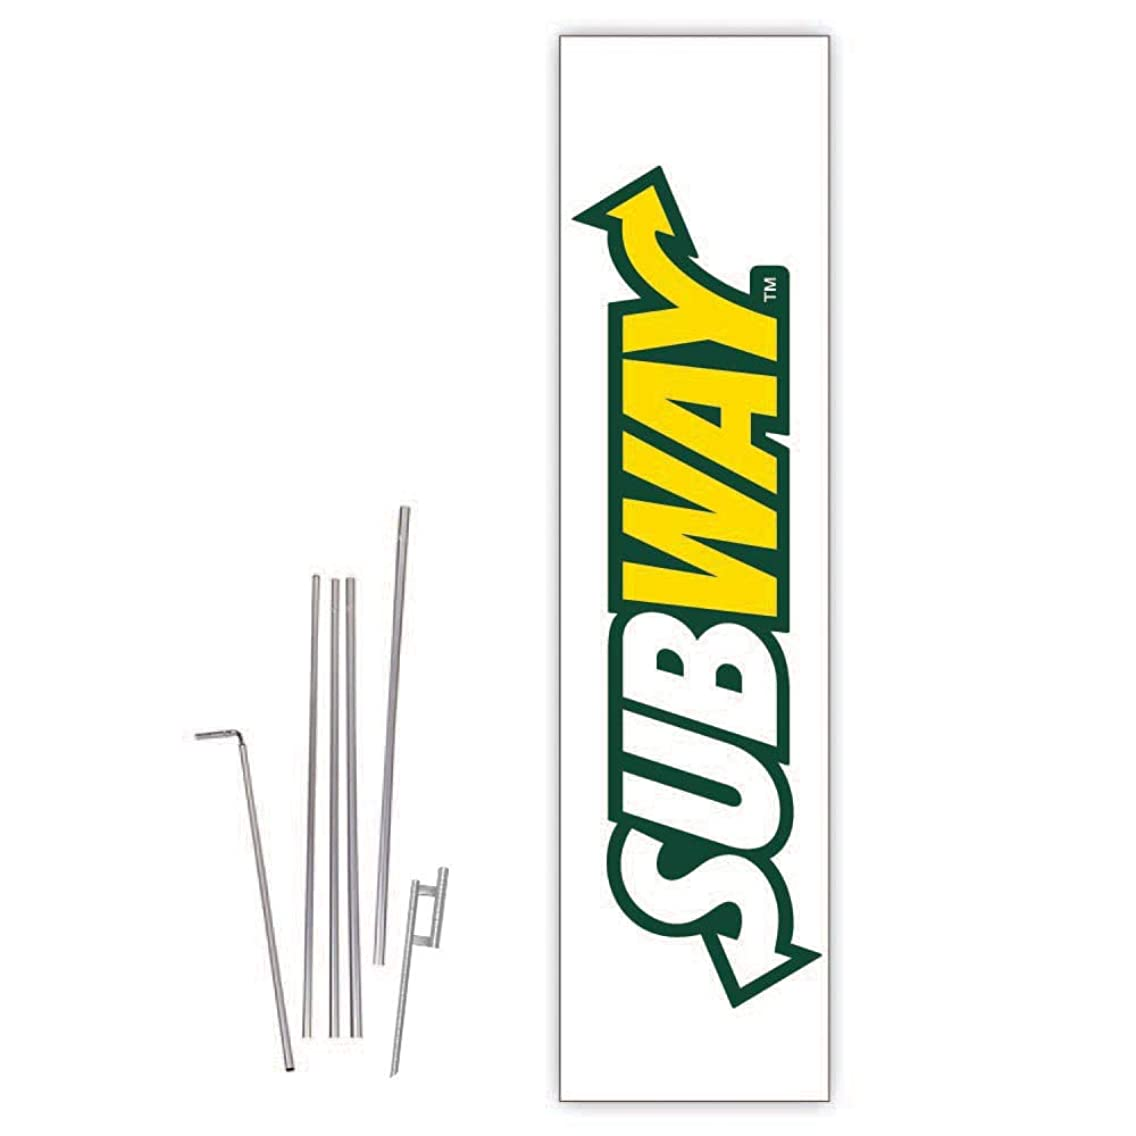 Cobb Promo Subway (White) Rectangle Boomer Flag with Complete 15ft Pole kit and Ground Spike